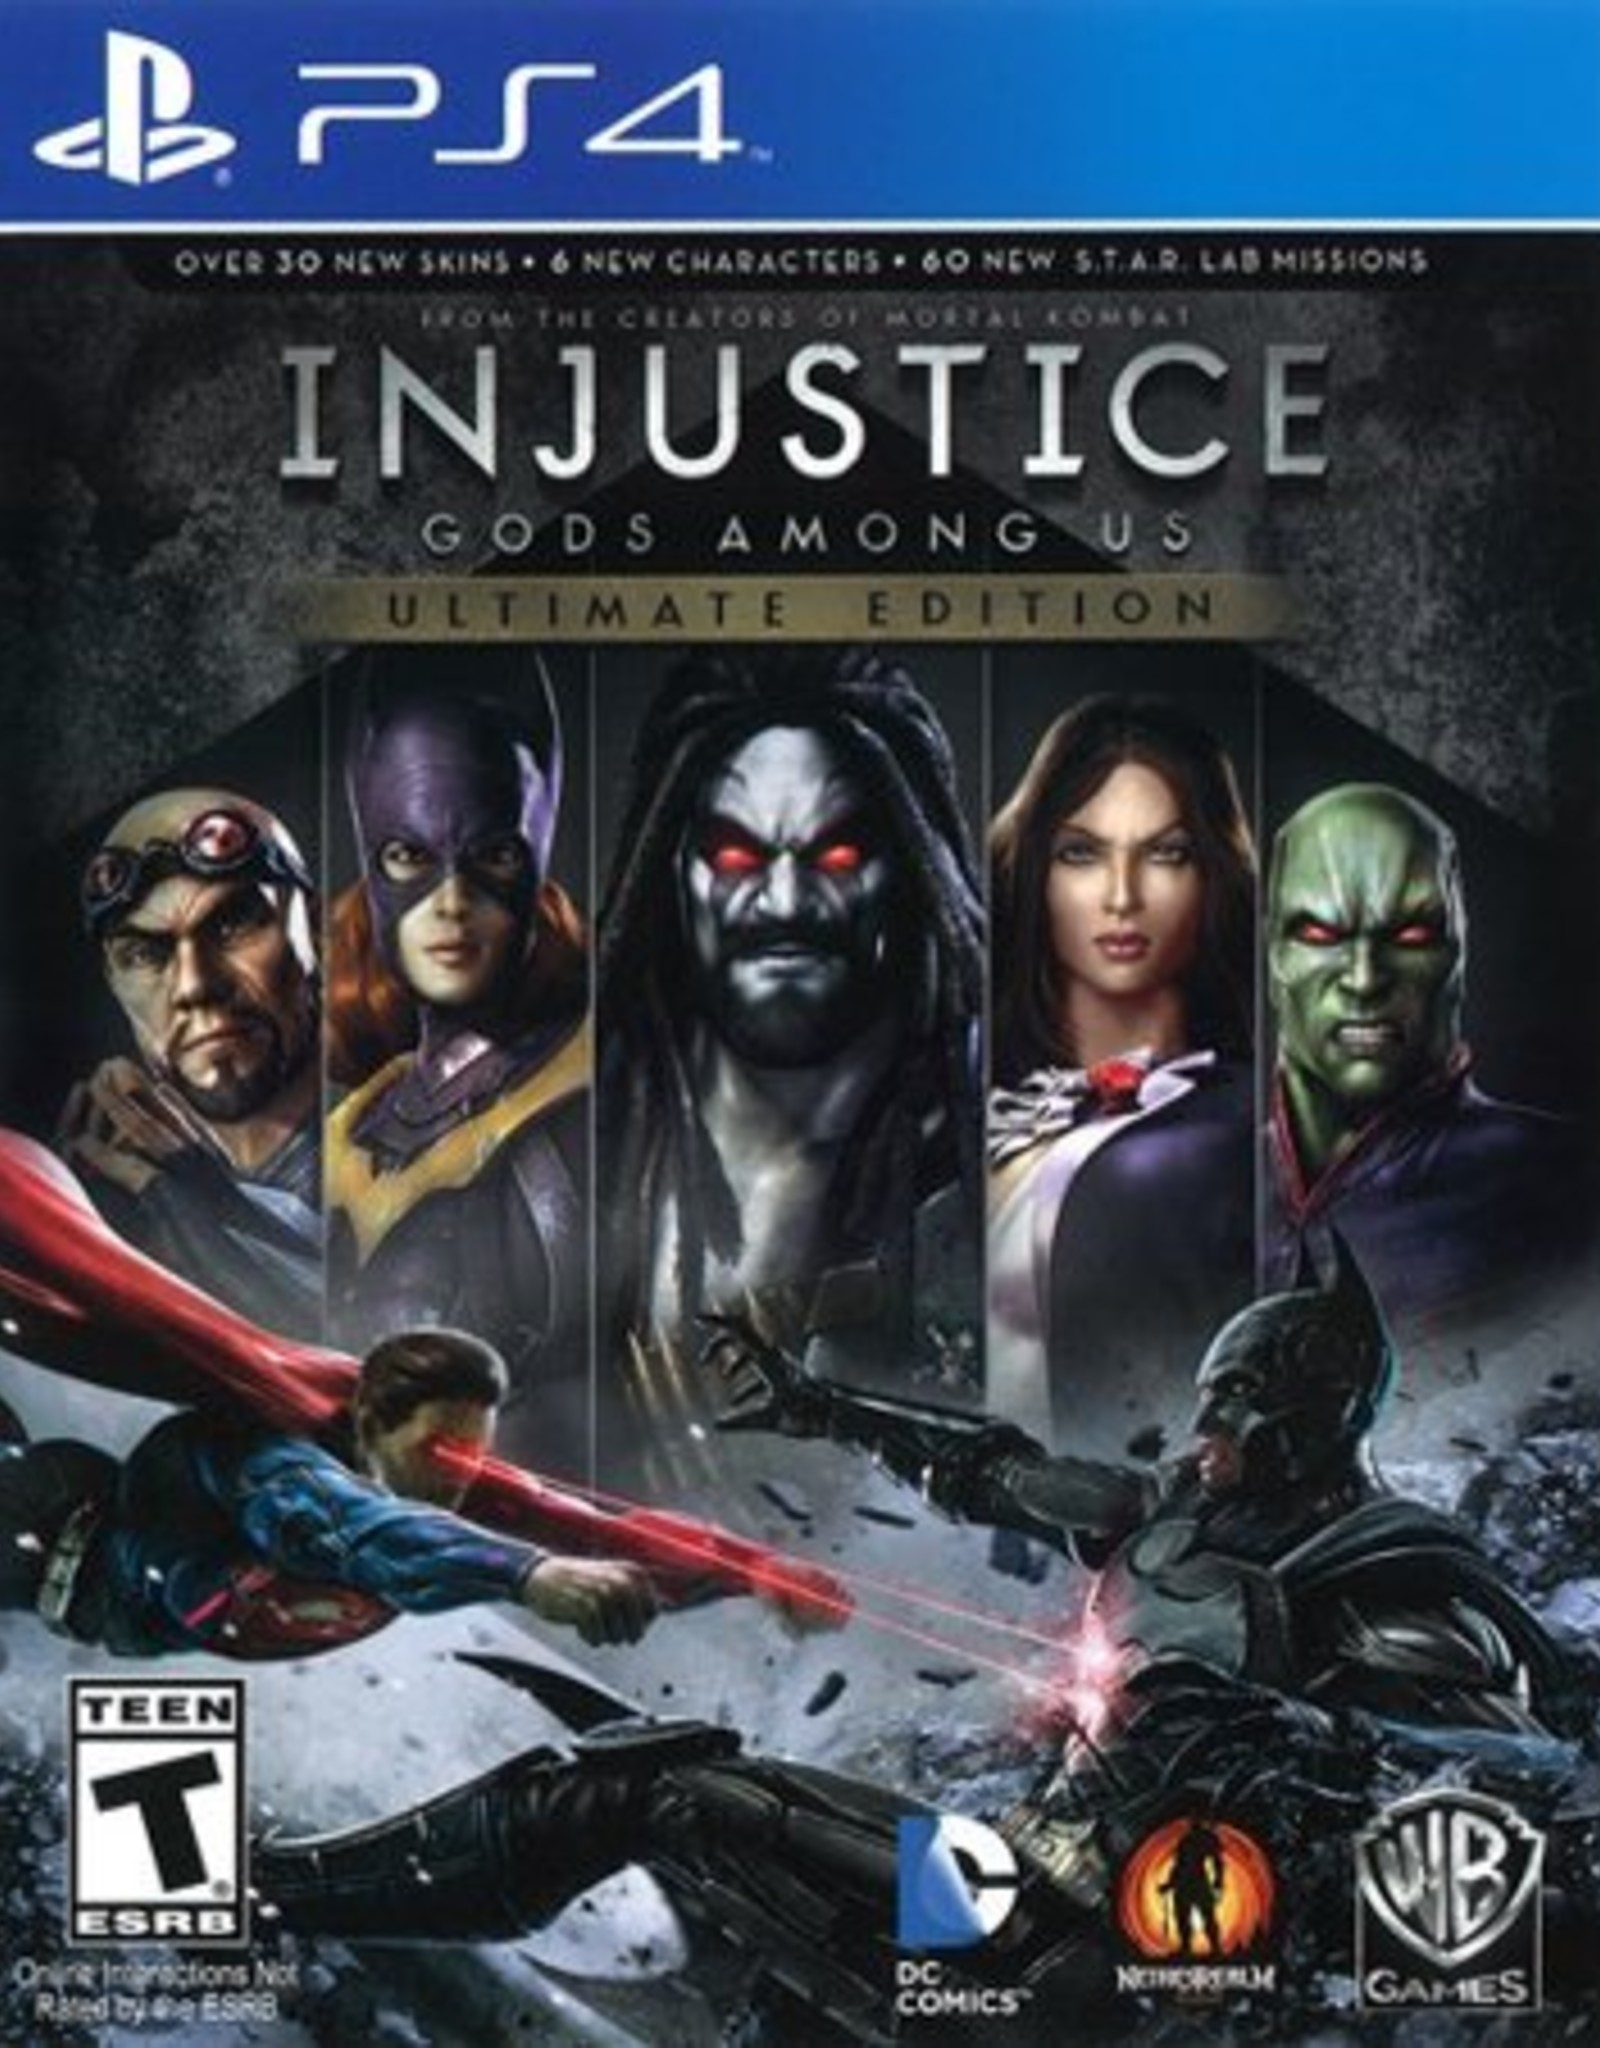 Injustice: Gods Among Us Ultimate Edition - PS4 PrePlayed